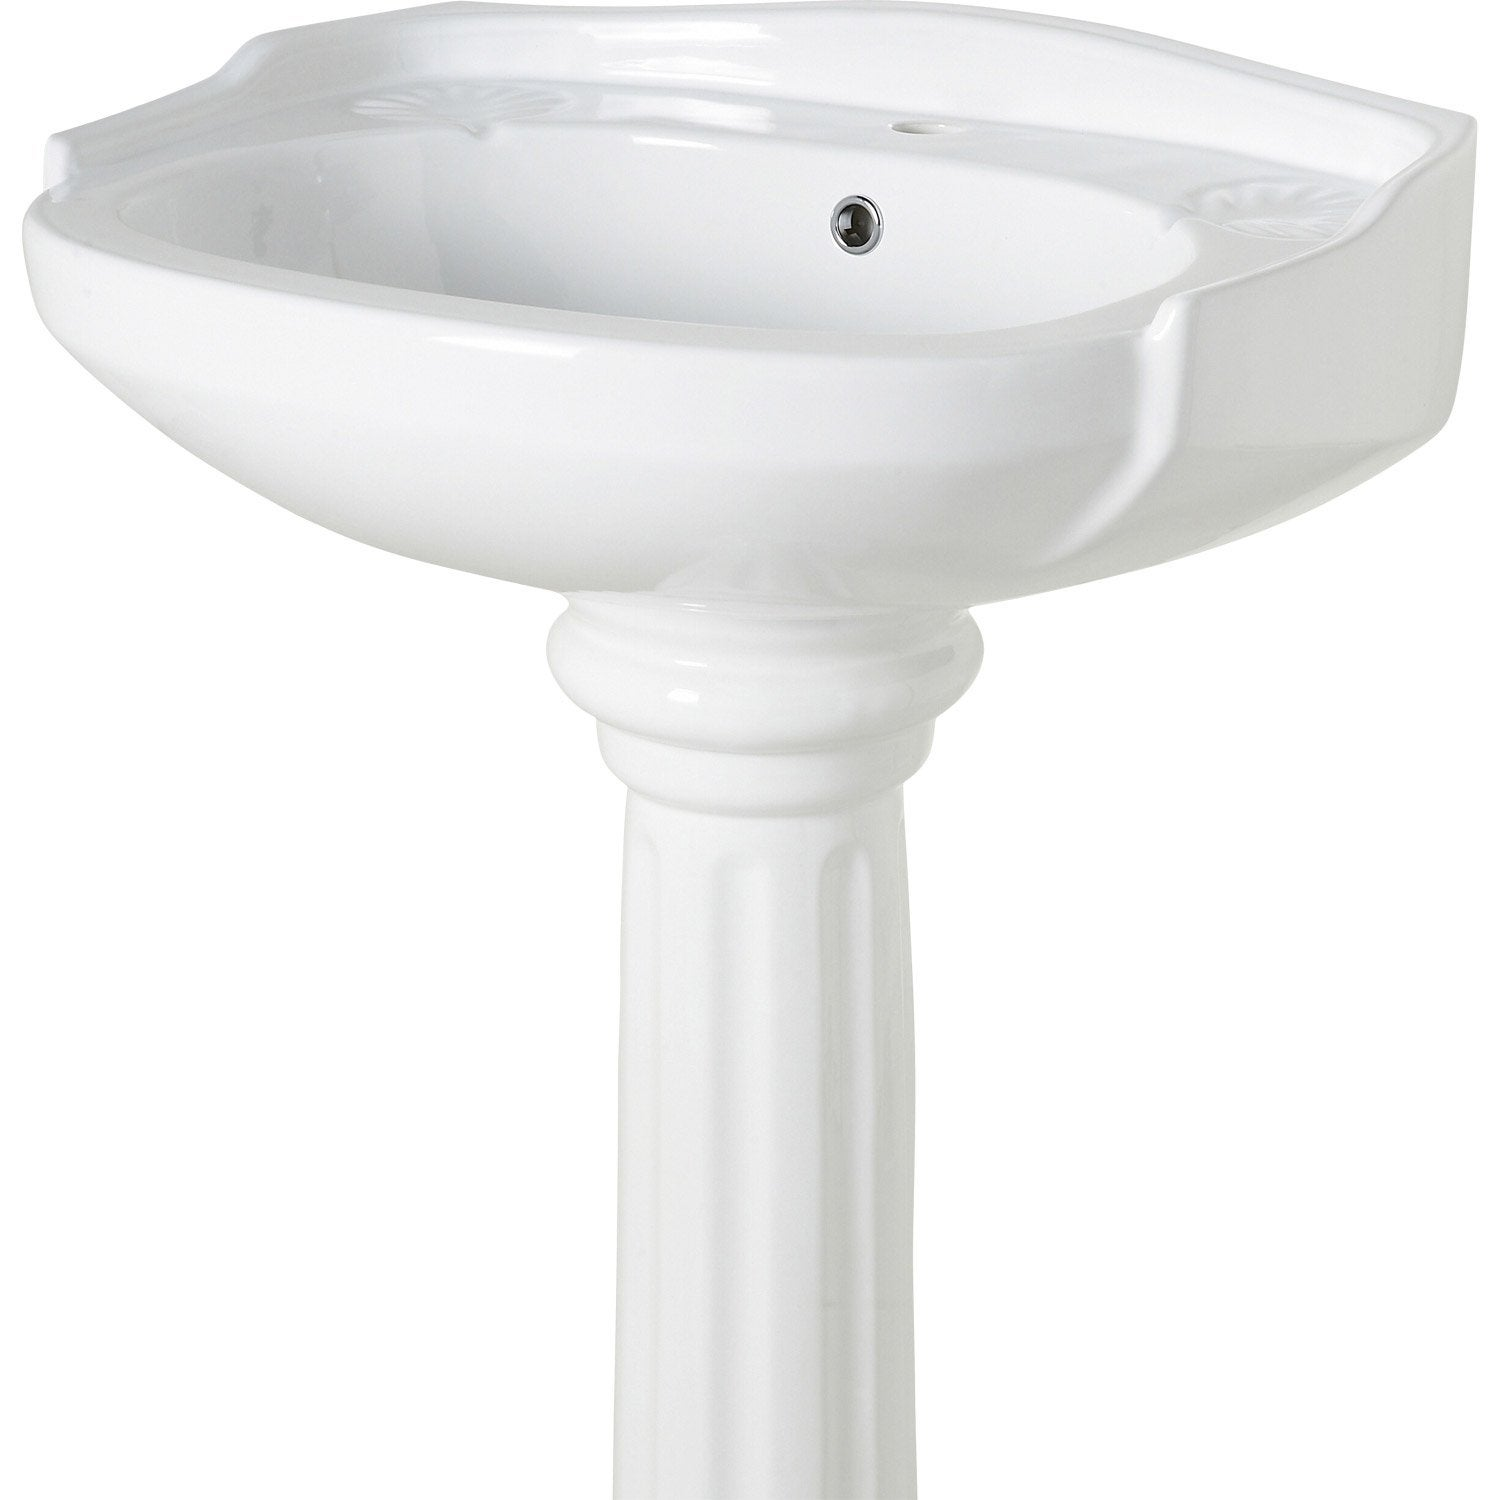 Lavabo pour colonne en c ramique blanc retro leroy merlin for Mobile lavabo leroy merlin